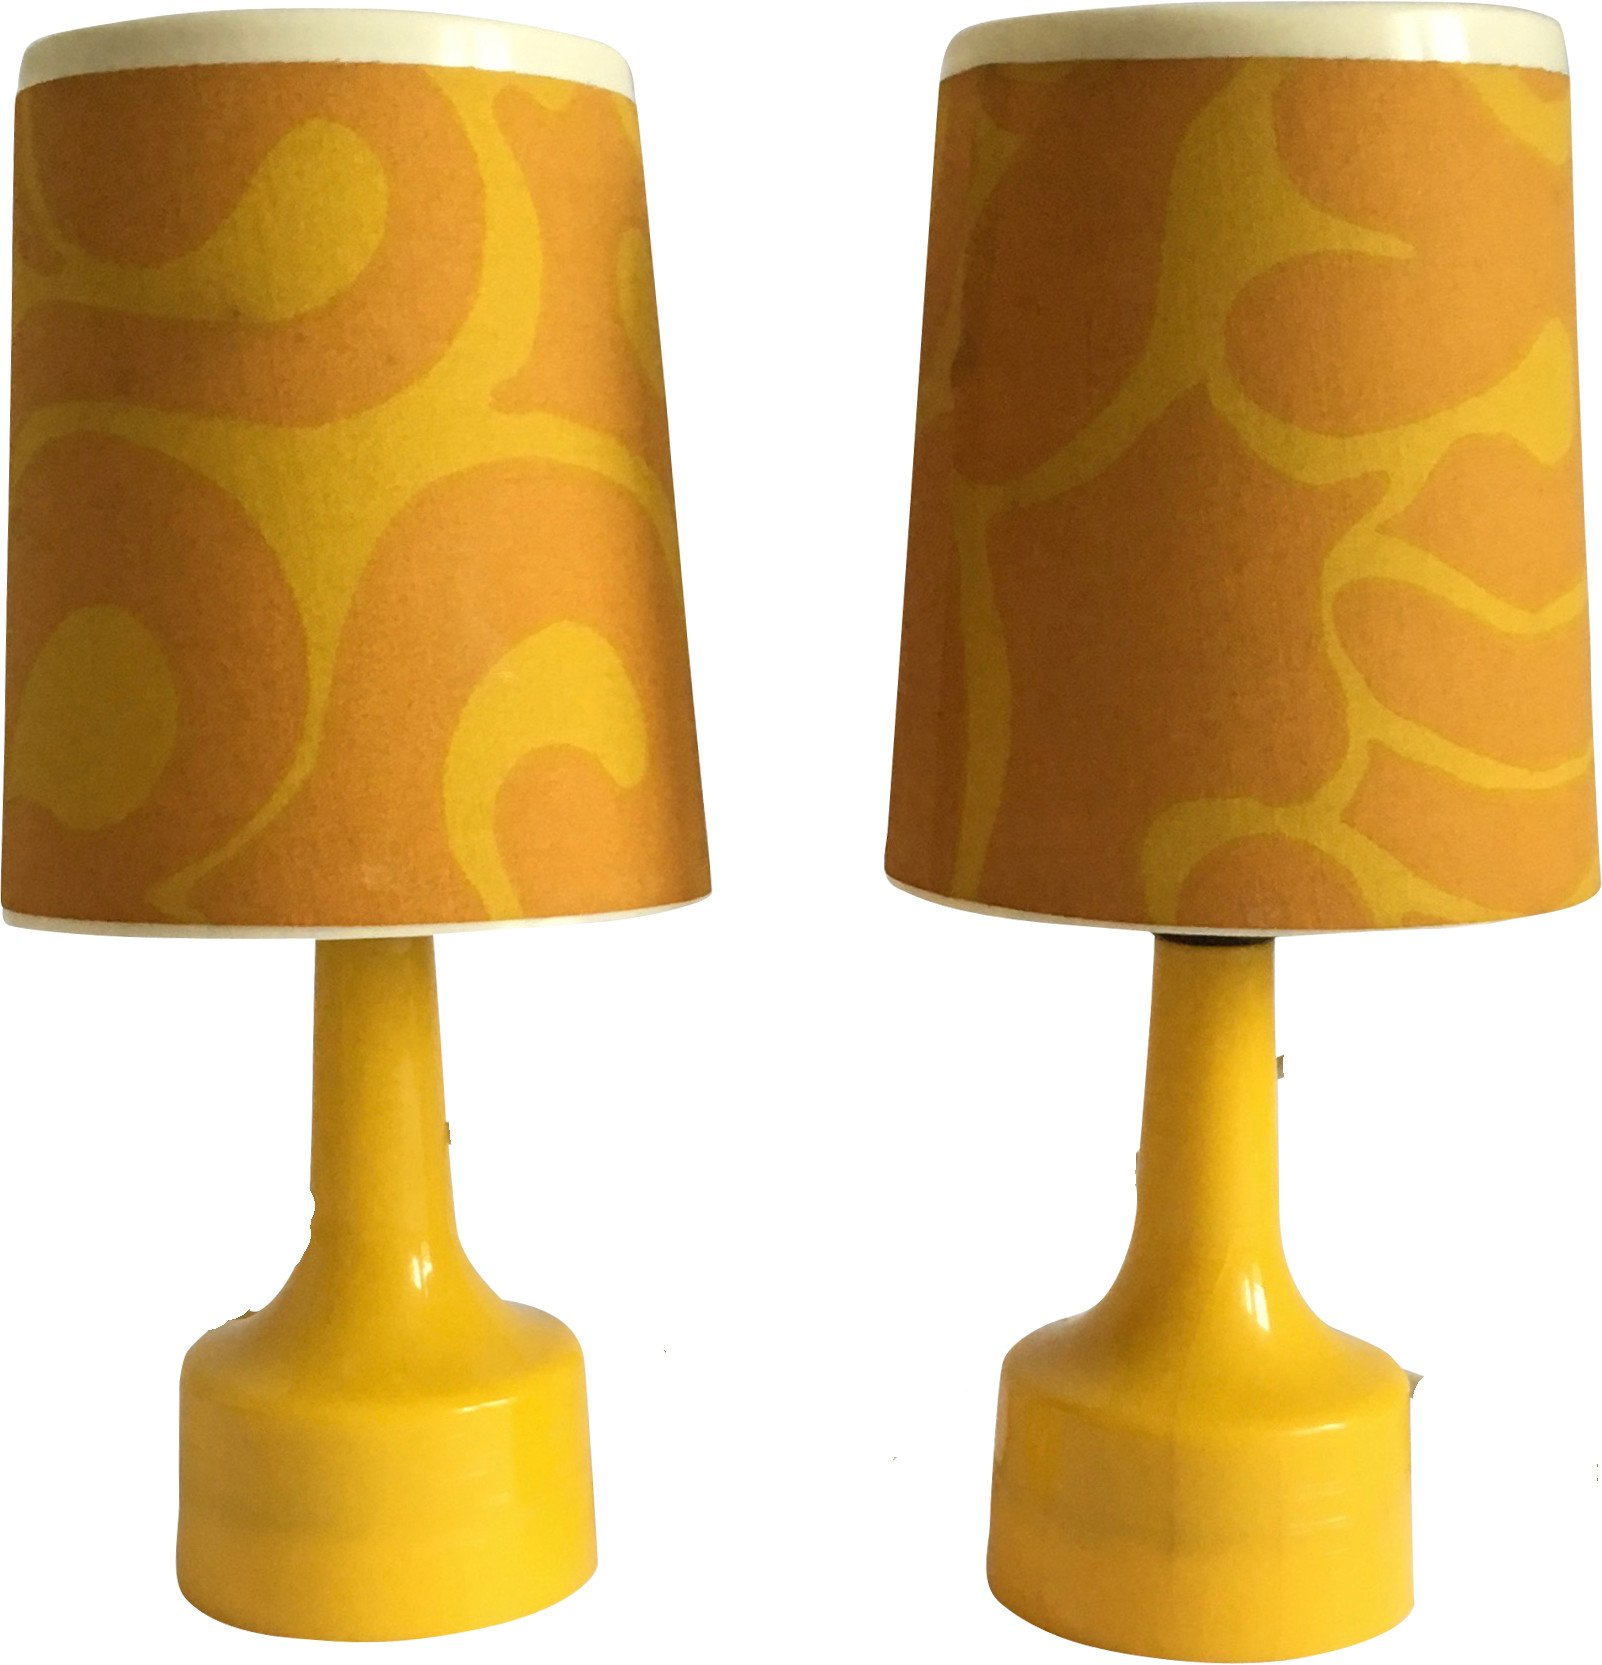 Pair of Night Lamps, 1970s